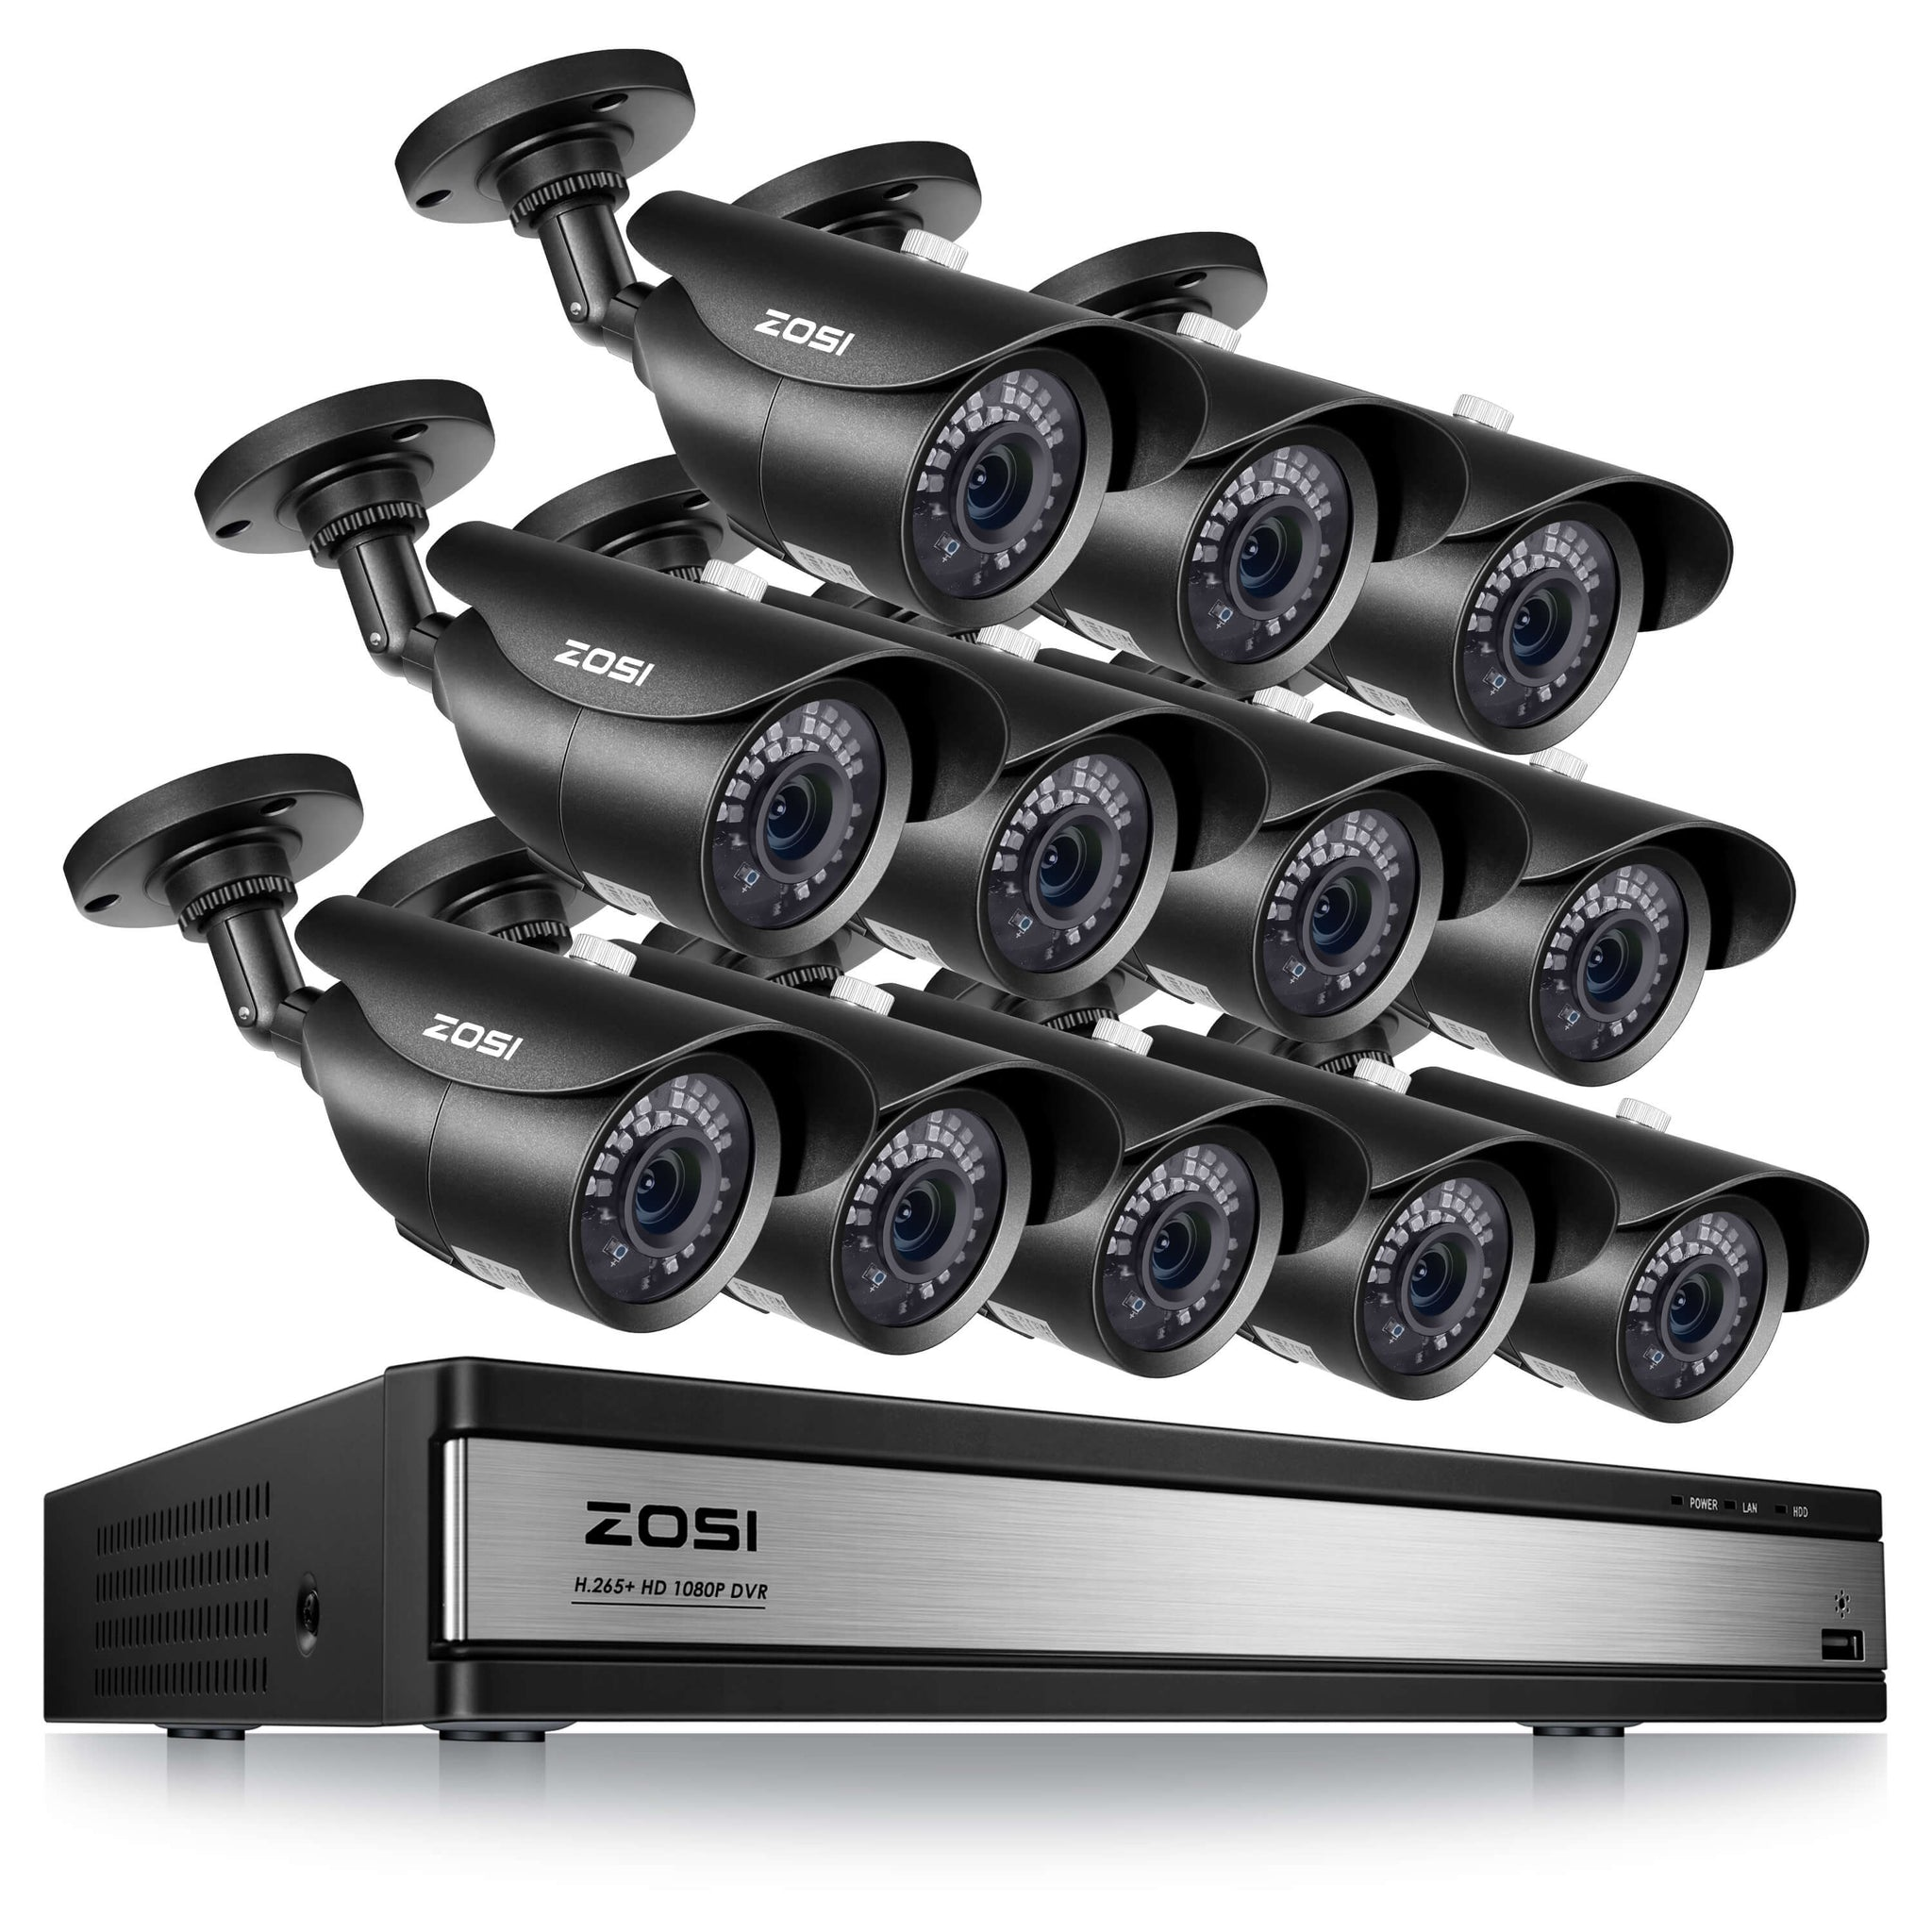 16 Channel DIY Security System, 120ft Infrared Night Vision, IP67 Weatherproof Camera